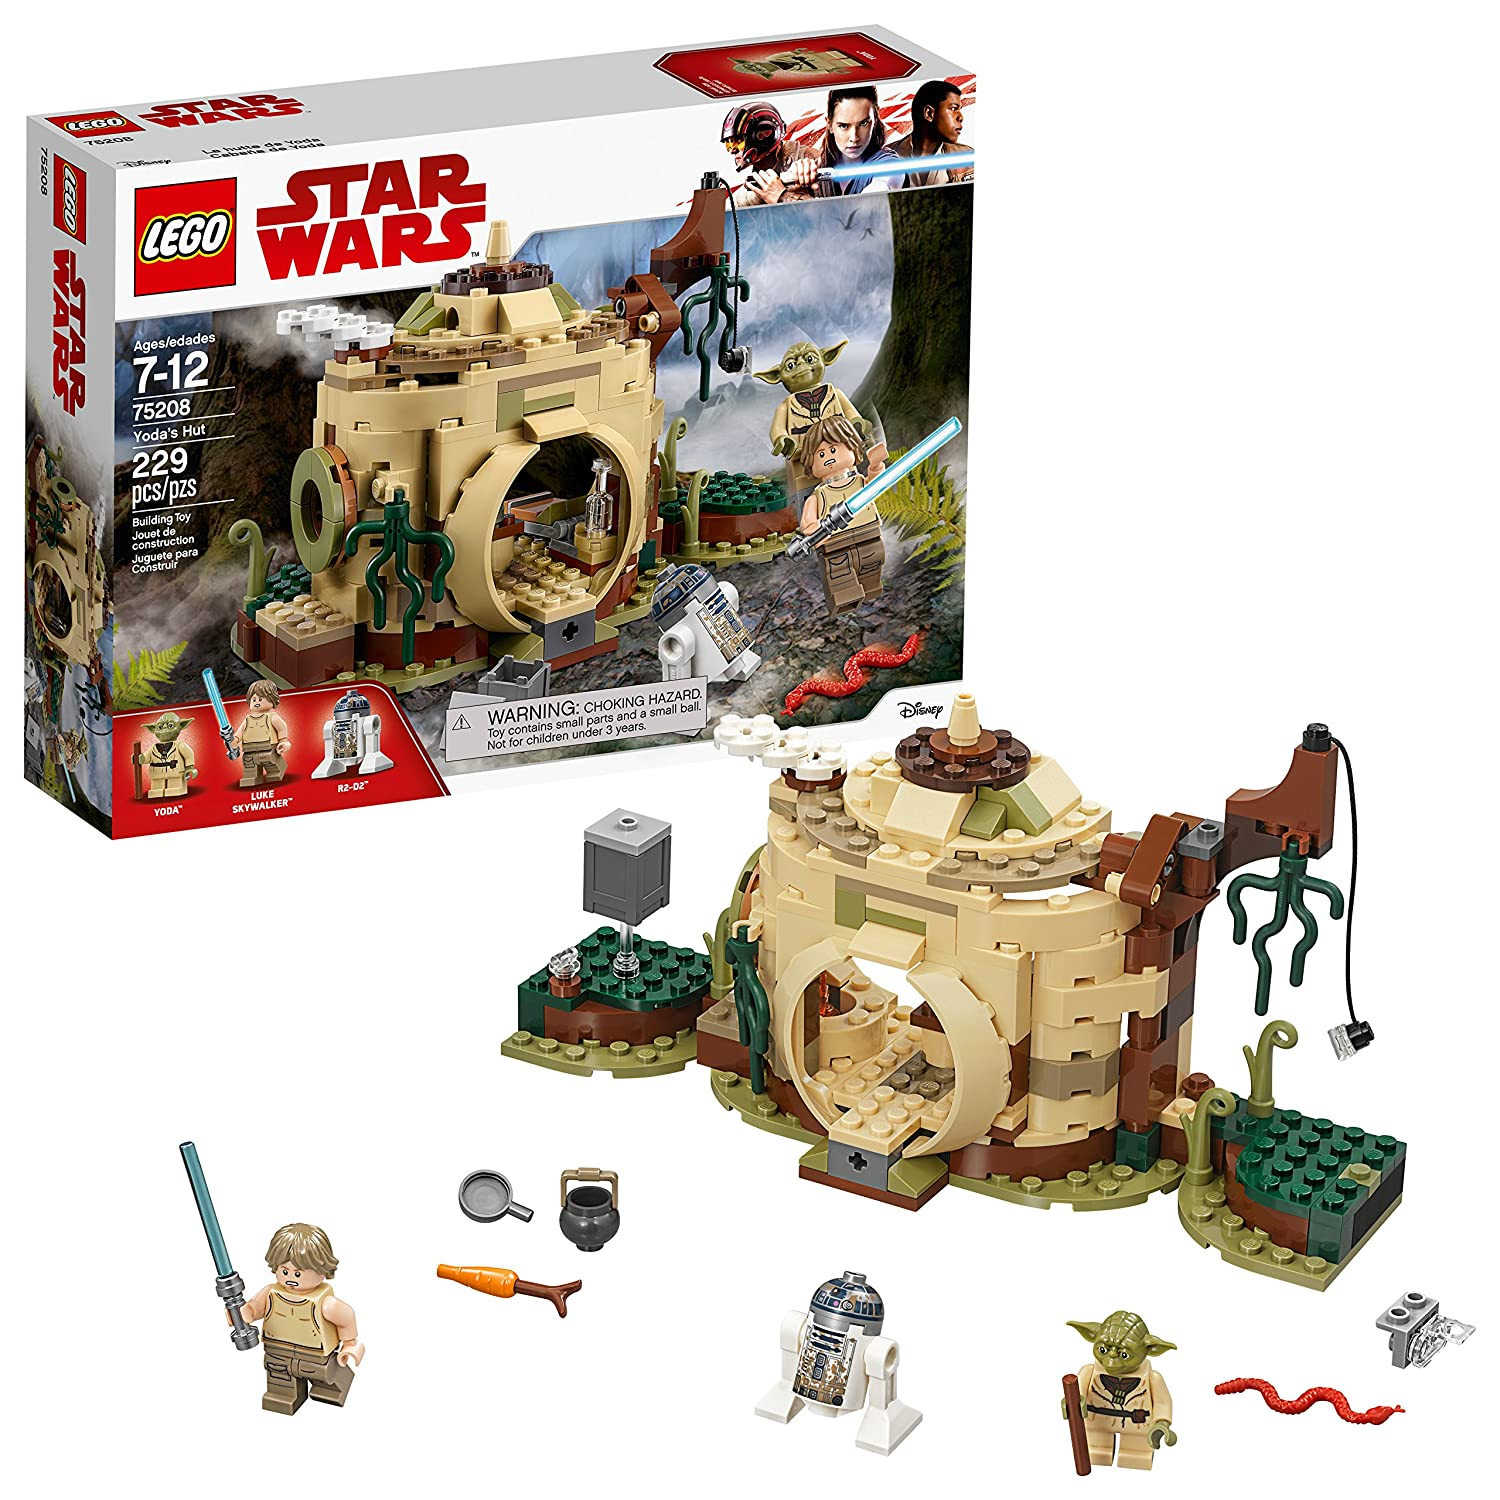 LEGO Star Wars: The Empire Strikes Back Yoda's Hut 75208 Building Kit (229 Piece) 6212673